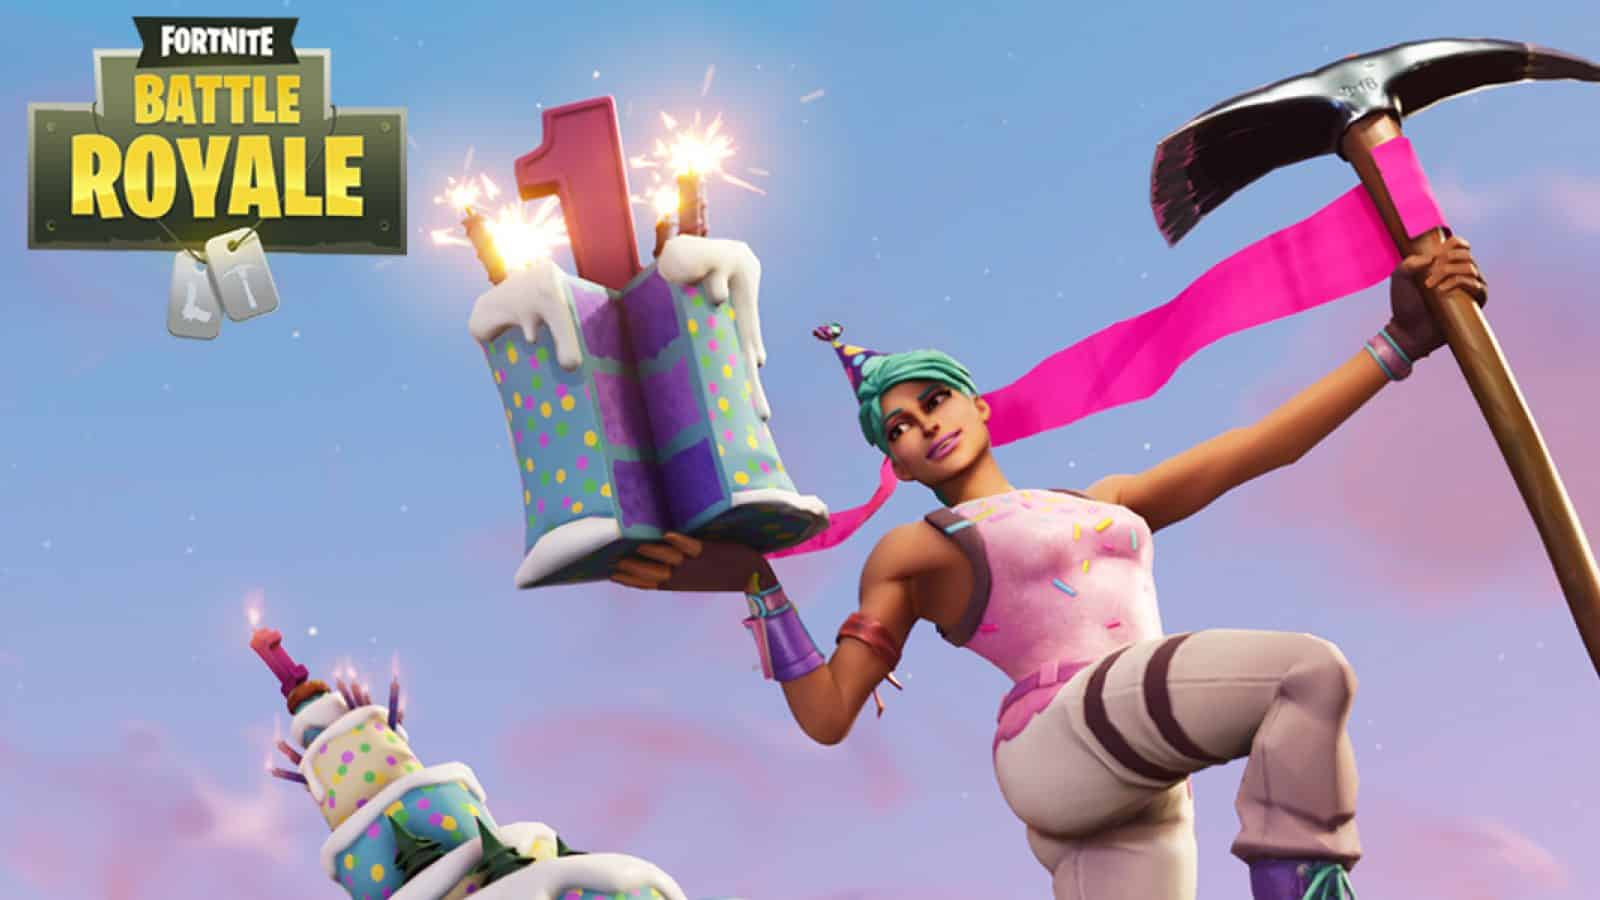 "Fortnite ""width ="" 1600 ""height ="" 900 ""srcset ="" https://cdn.shortpixel.ai/client/q_lossy,ret_img,w_1600/https://www.leak.com/wp-content/uploads/2019 /07/Fortnite-Birthday-Event.jpg 1600w, https://cdn.shortpixel.ai/client/q_lossy,ret_img,w_95/https://www.leak.com/wp-content/uploads/2019/07/ Fortnite-Birthday-Event-95x53.jpg 95w, https://cdn.shortpixel.ai/client/q_lossy,ret_img,w_350/https://www.leak.com/wp-content/uploads/2019/07/Fortnite -Birthday-Event-350x197.jpg 350w, https://cdn.shortpixel.ai/client/q_lossy,ret_img,w_768/https://www.leak.com/wp-content/uploads/2019/07/Fortnite- Birthday-Event-768x432.jpg 768w, https://cdn.shortpixel.ai/client/q_lossy,ret_img,w_1200/https://www.leak.com/wp-content/uploads/2019/07/Fortnite-Birthday -Event-1200x675.jpg 1200w, https://cdn.shortpixel.ai/client/q_lossy,ret_img,w_1068/https://www.leak.com/wp-content/uploads/2019/07/Fortnite-Birthday- Event-1068x601.jpg 1068w ""data-sizes ="" (max-width: 1600px) 100vw, 1600px"